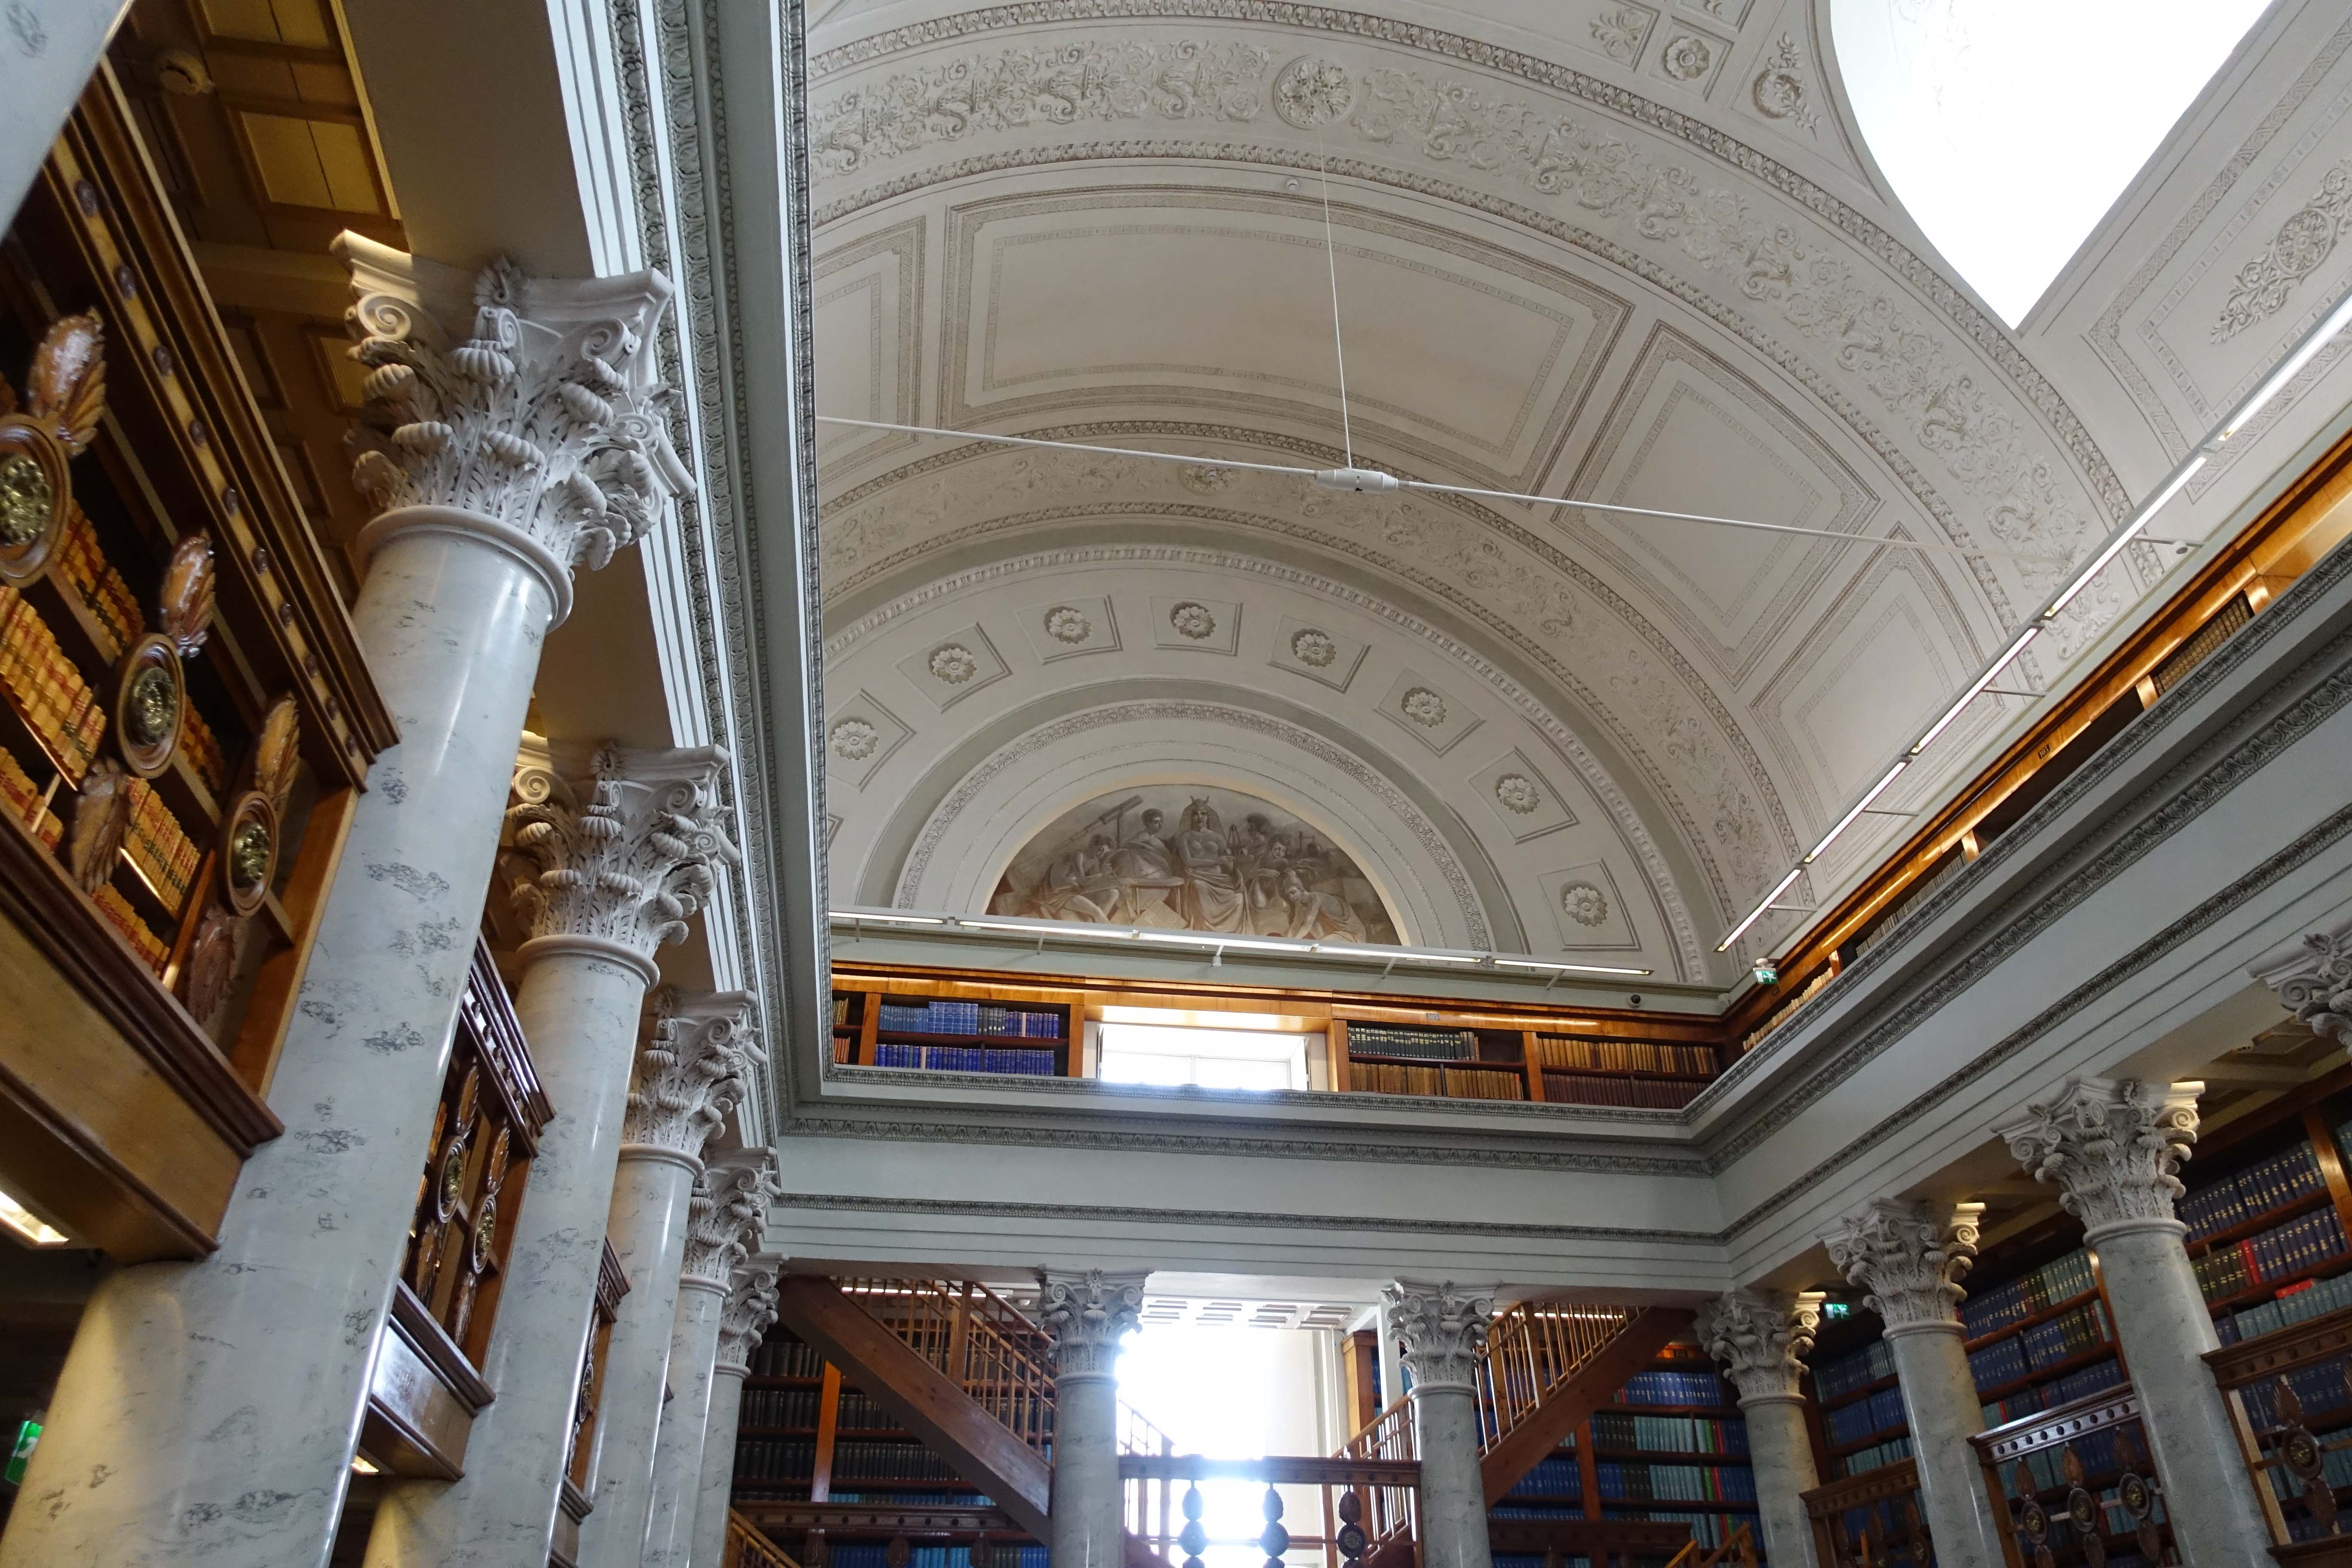 National Library of Finland 12 - More Interior